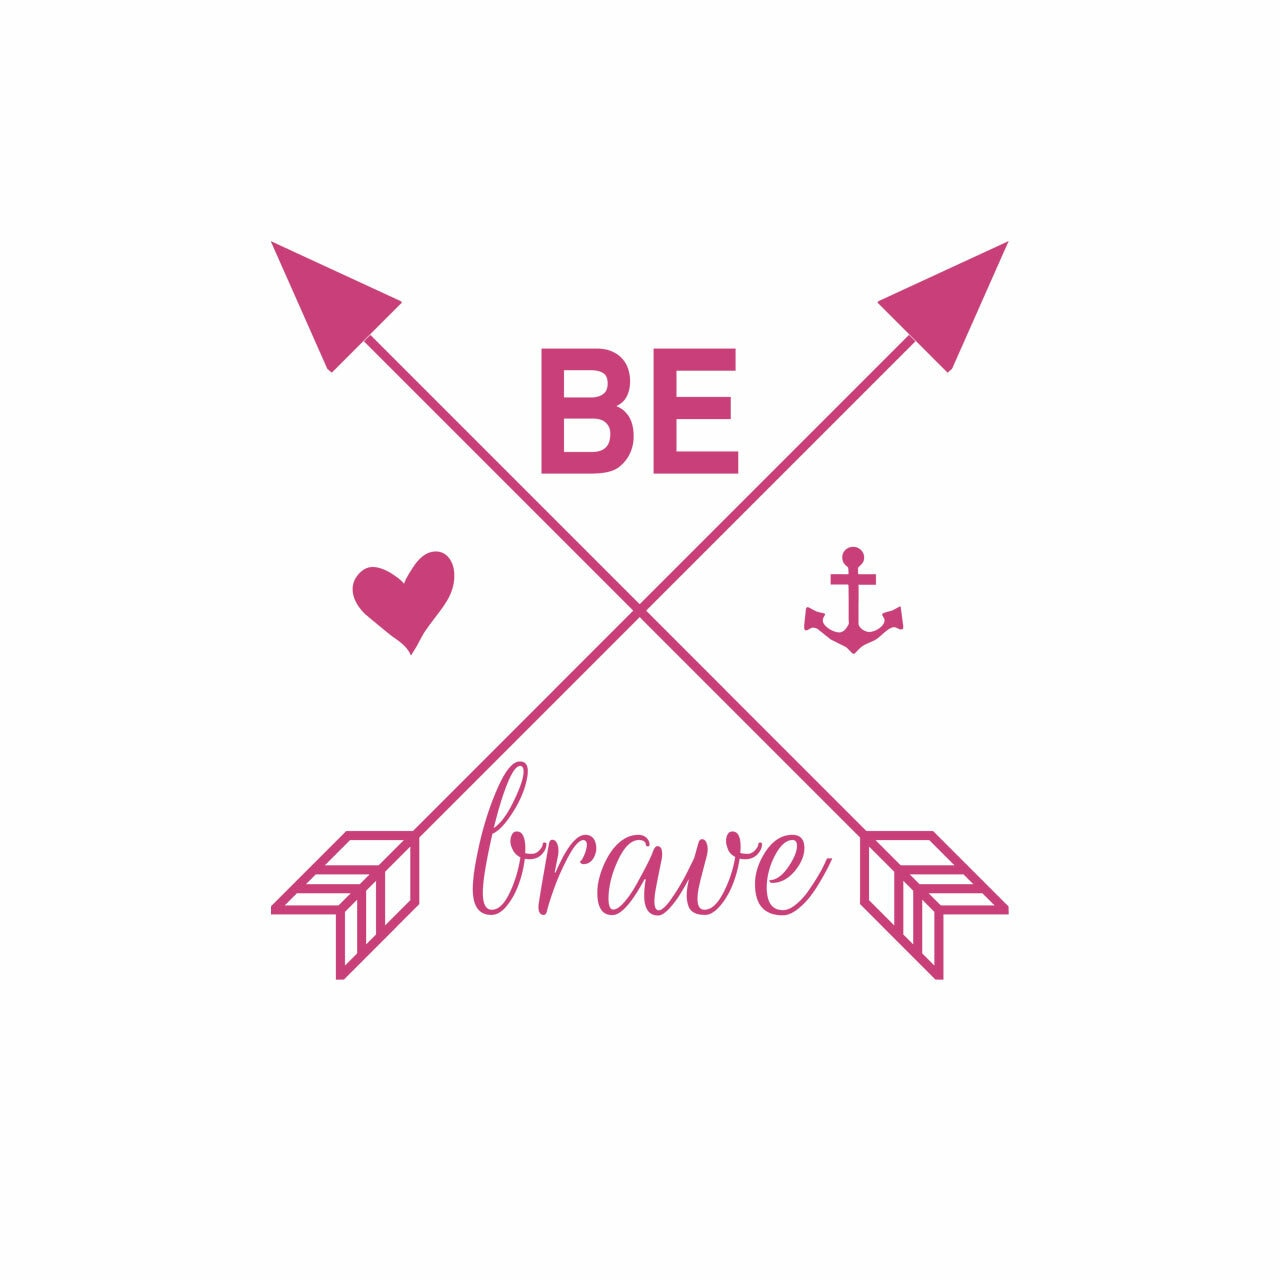 """""""Be brave"""" with arrows, heart and anchor in hot pink on white background"""